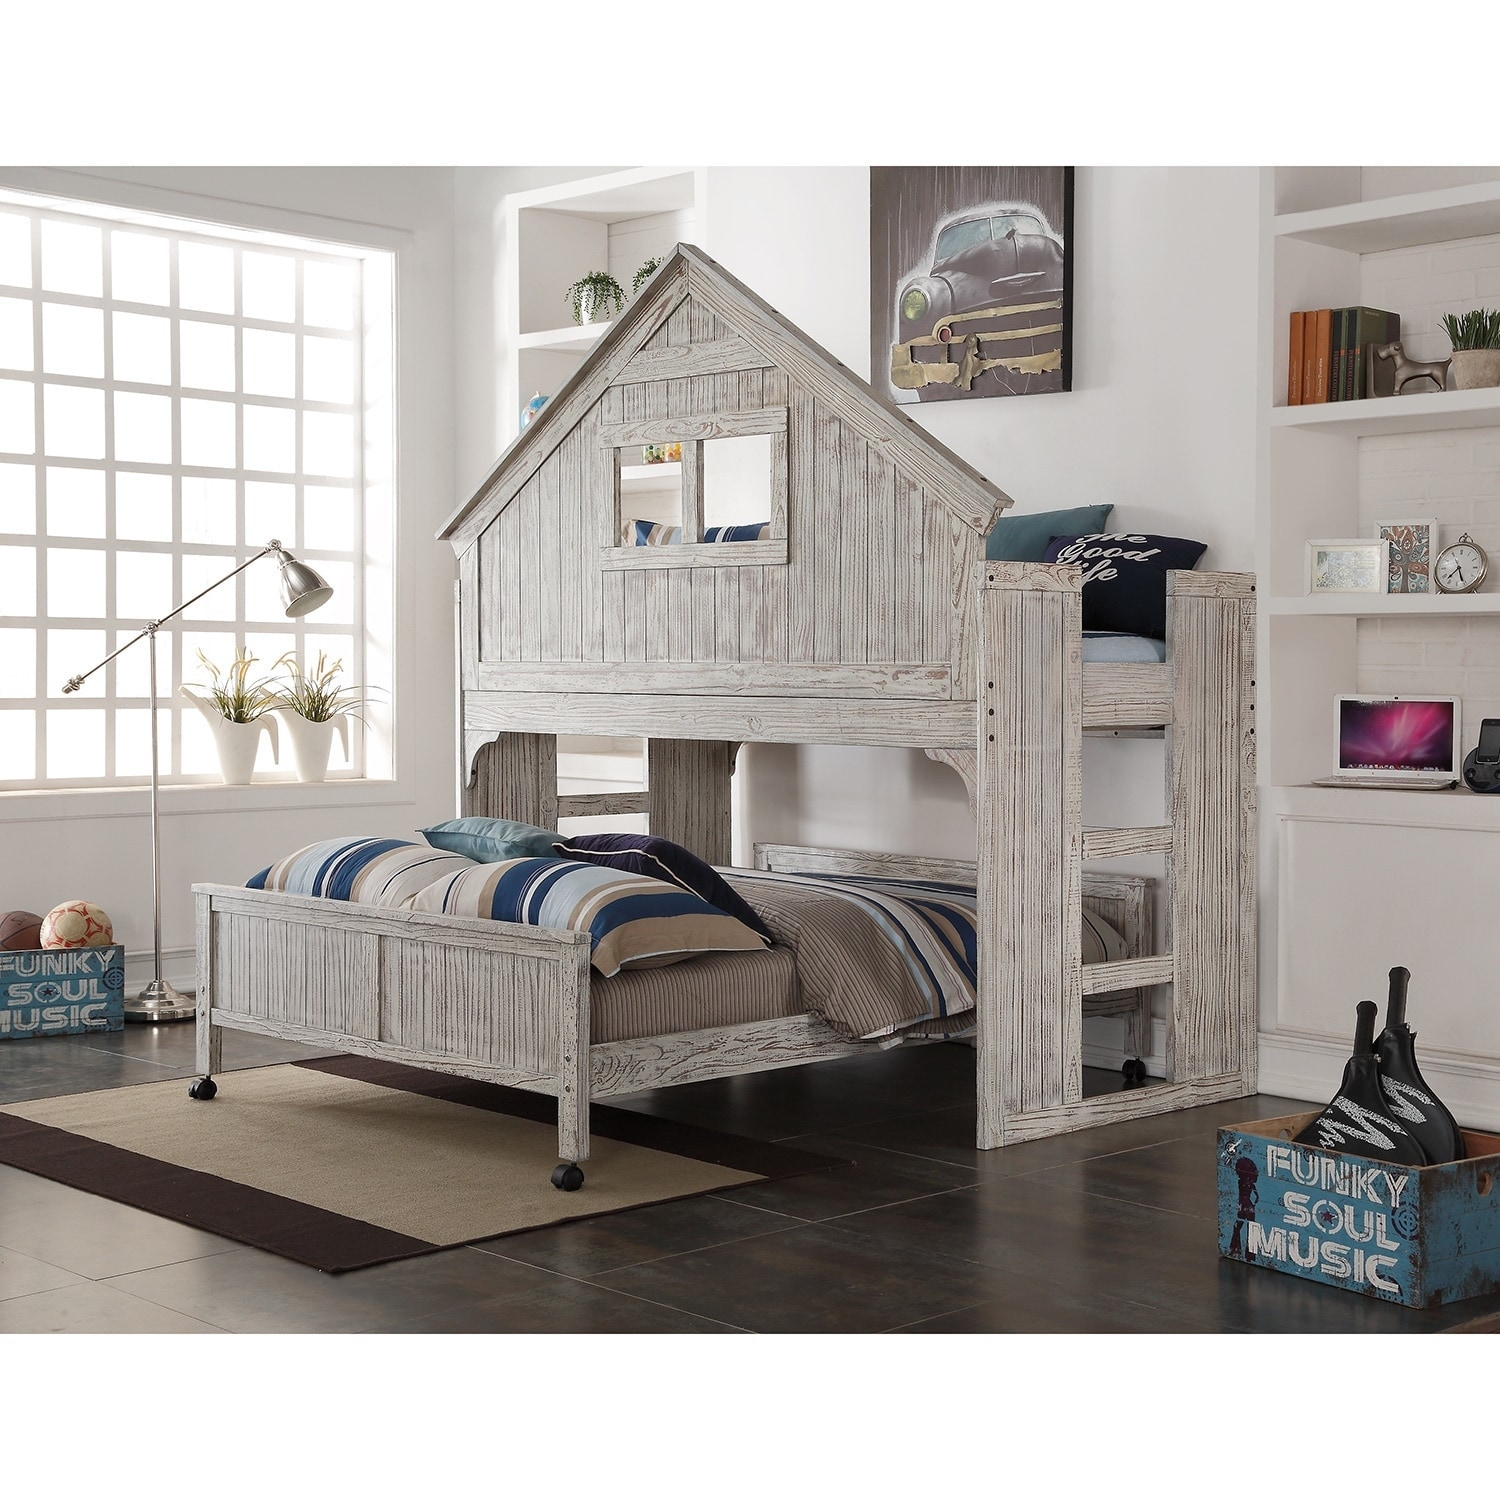 Donco Kids Brushed Driftwood Finish Club House Low Loft With Full Size Caster Bed Overstock 10958798